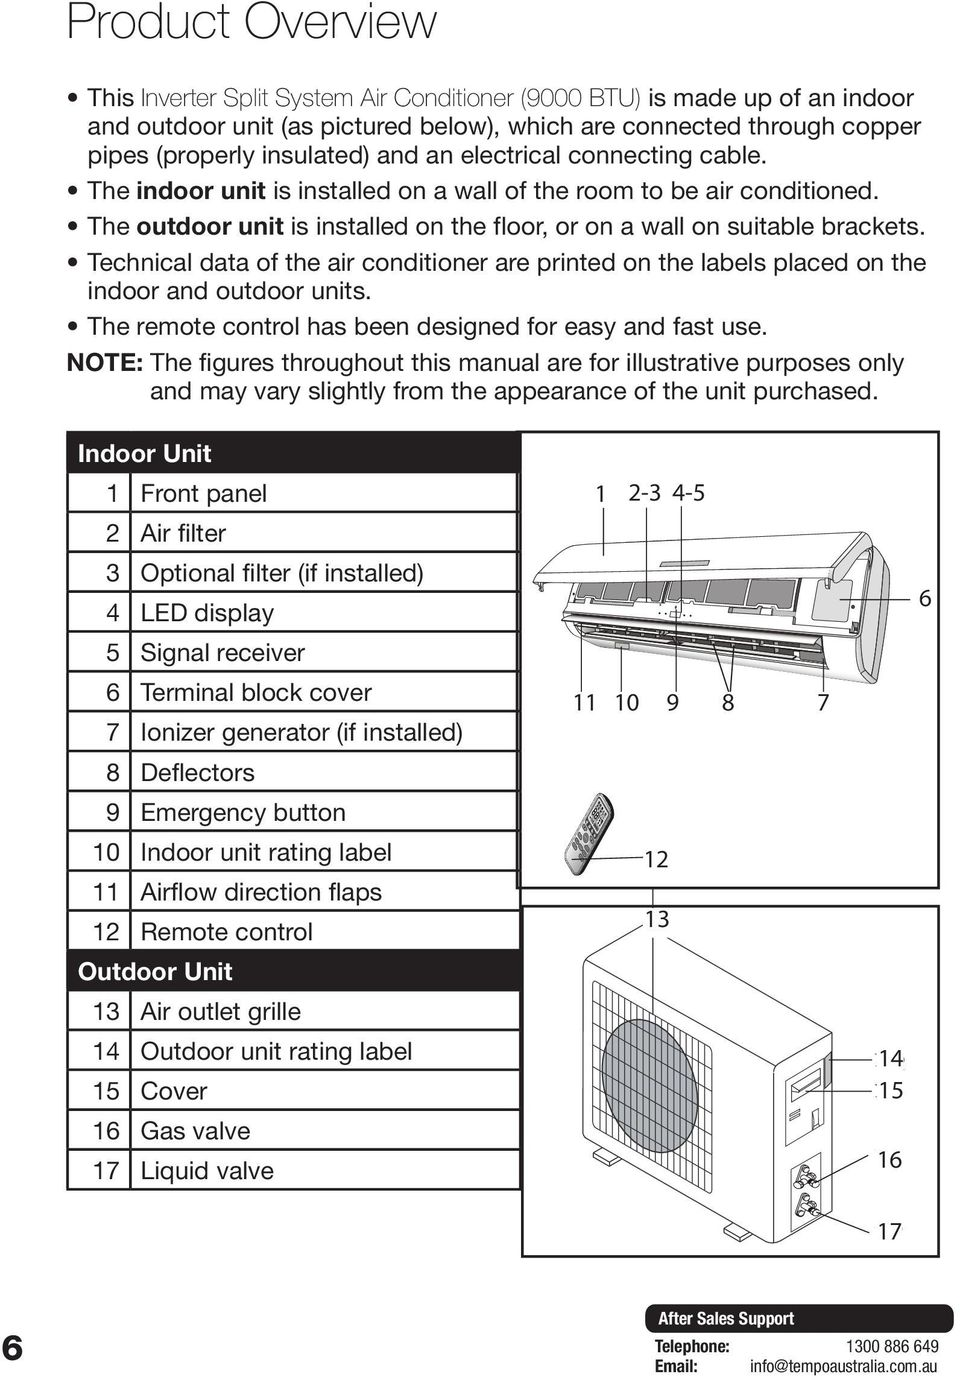 The outdoor unit is installed on the floor, or on a wall on suitable brackets. Technical data of the air conditioner are printed on the labels placed on the indoor and outdoor units.